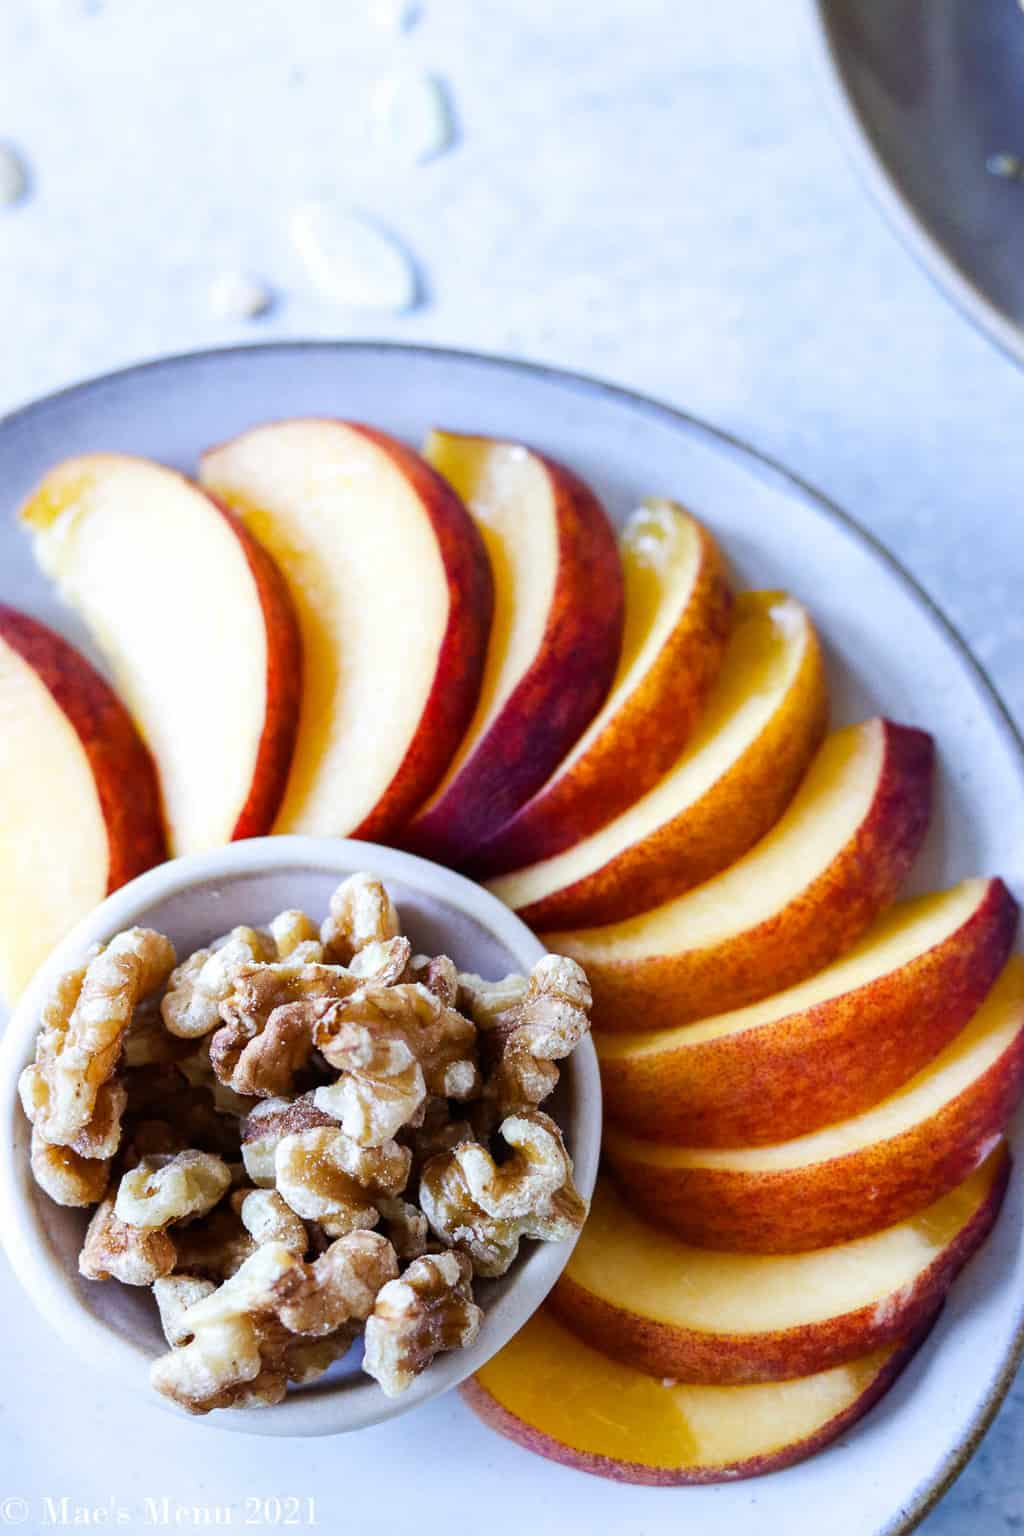 An overhead shot of a sliced peach and walnuts